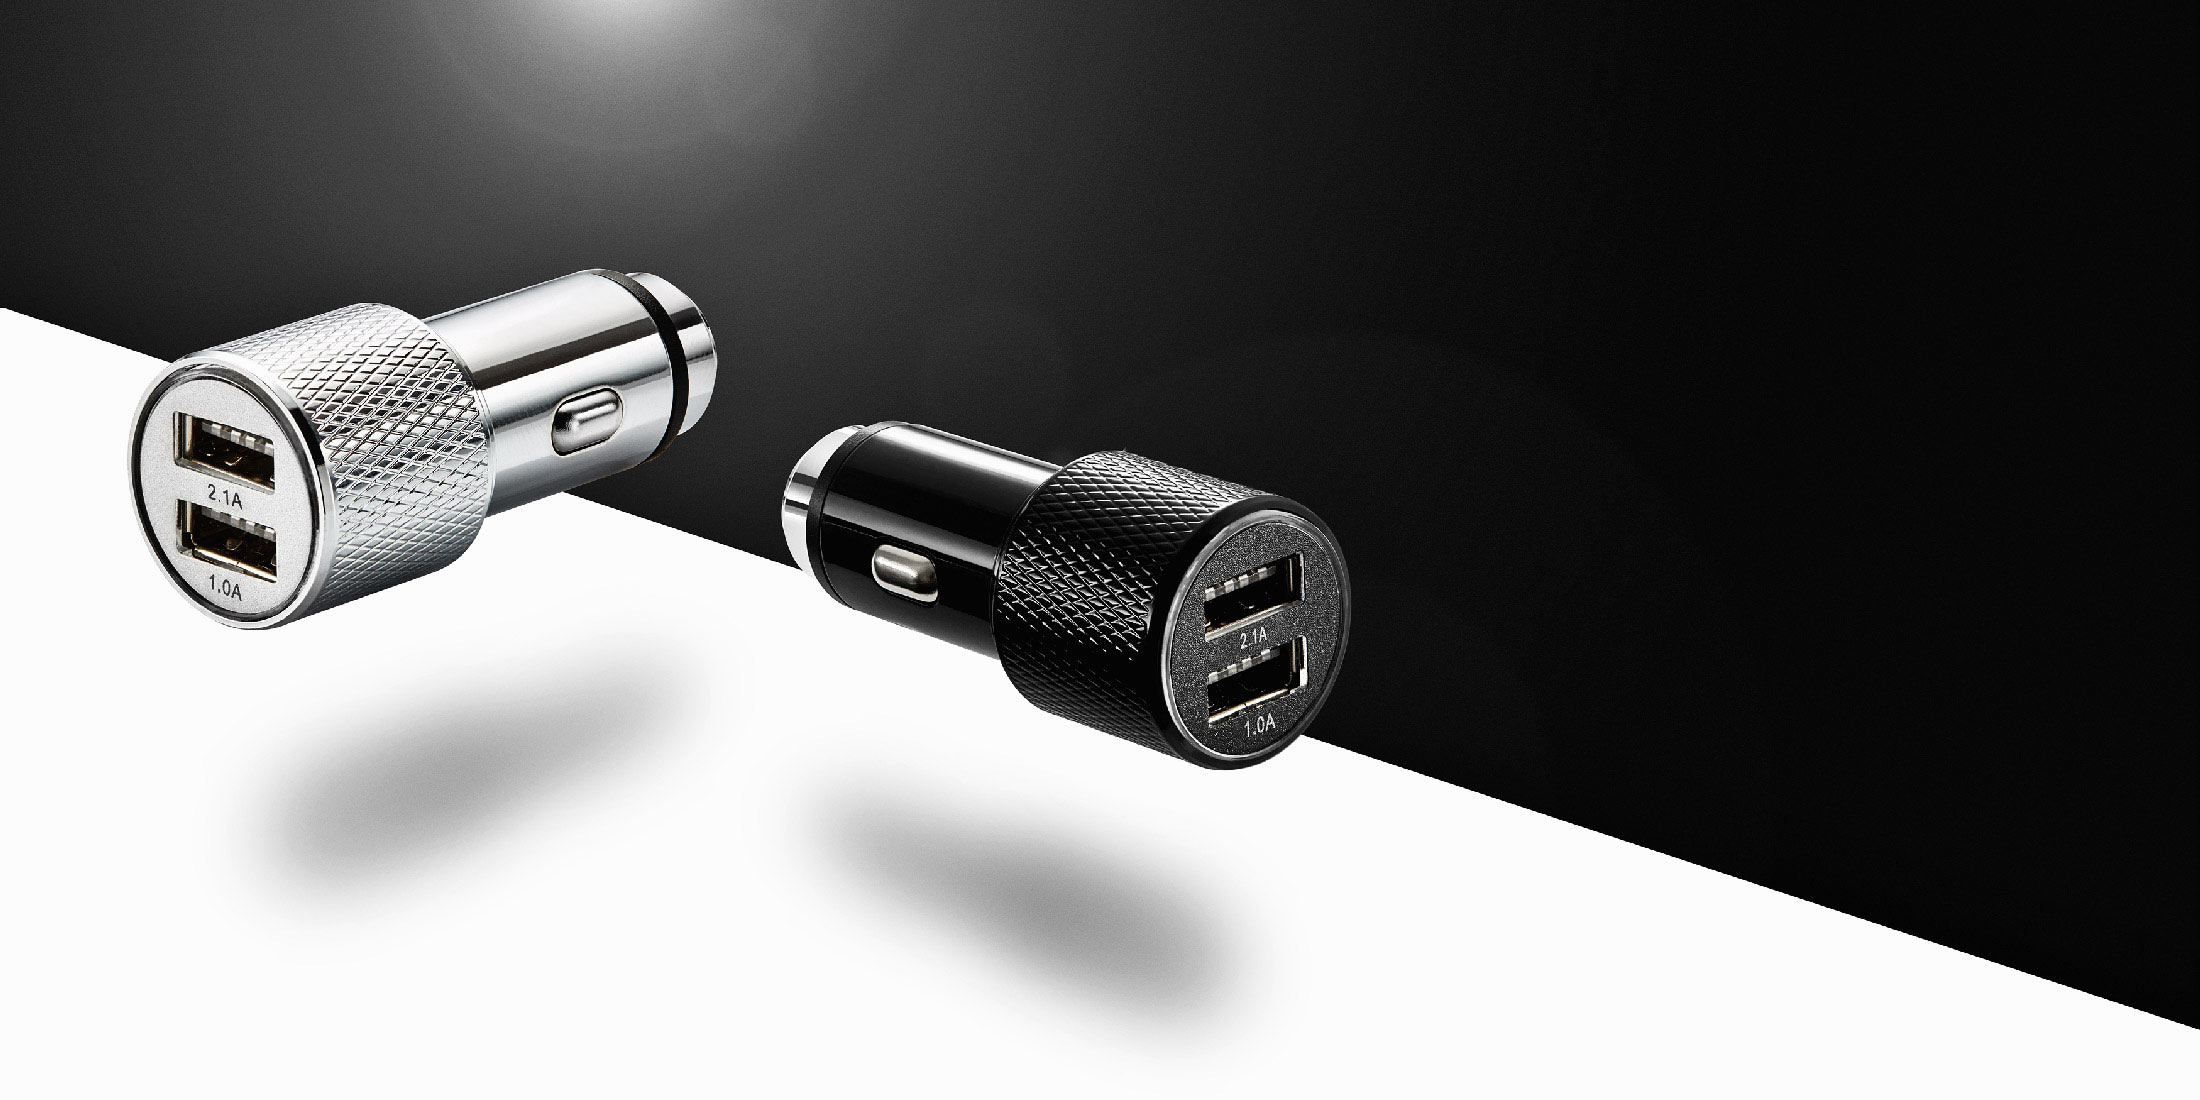 Product photographer London - USB car charger for mobile phones and tablets